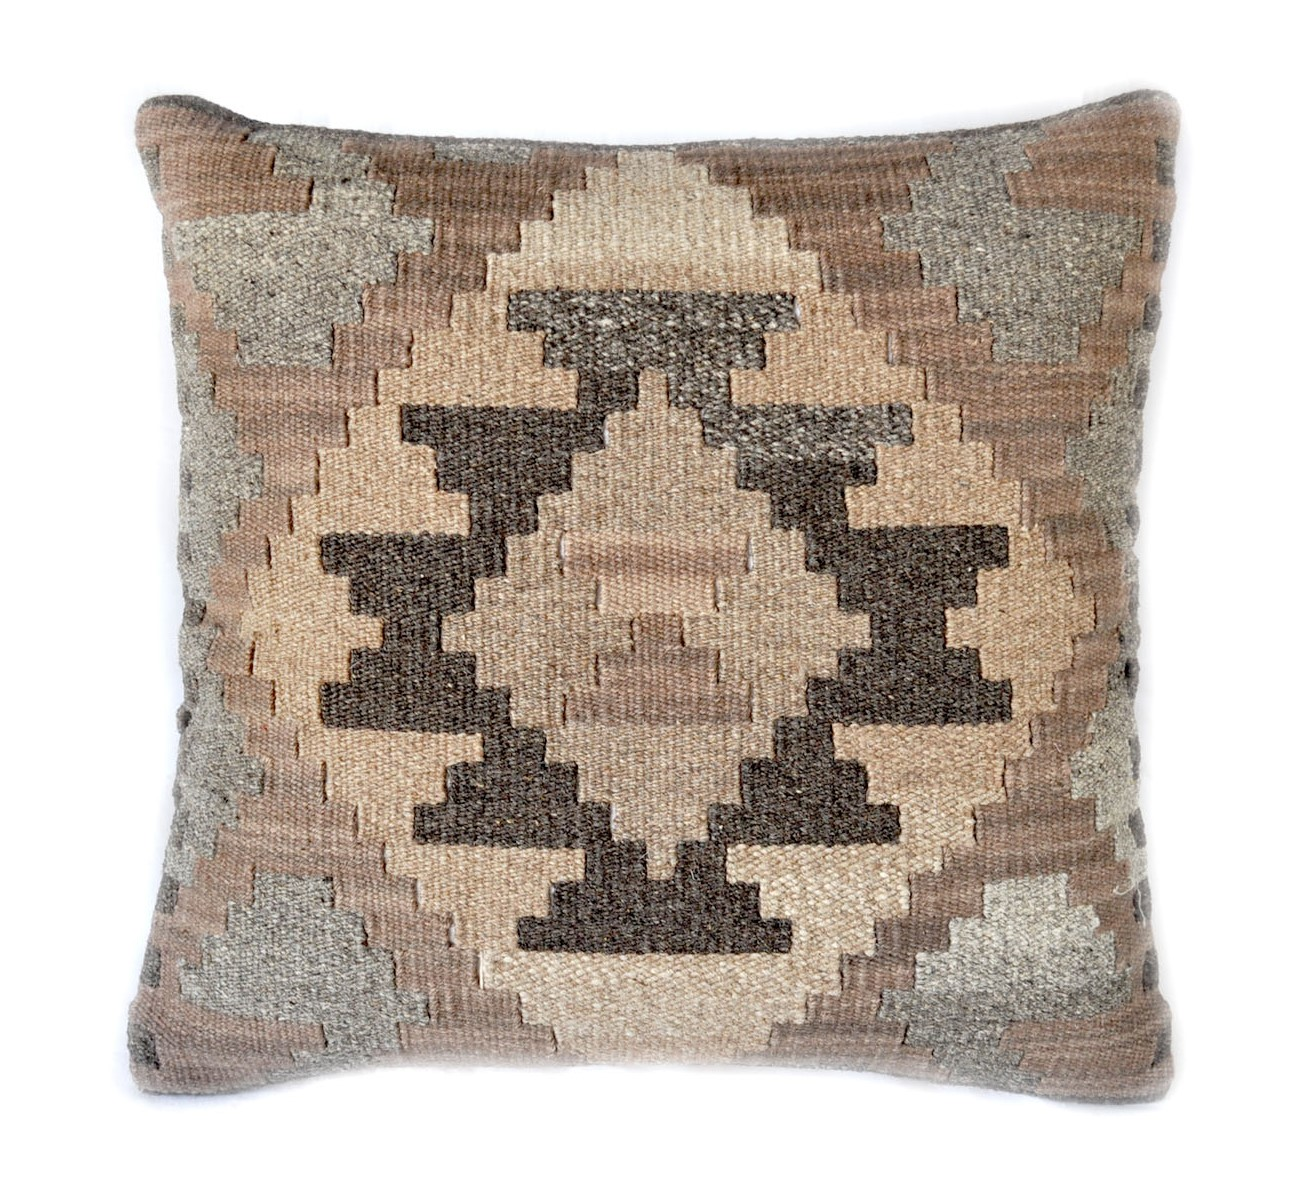 18×18 Hand-woven Wool Kilim Pillow Cover 12980992